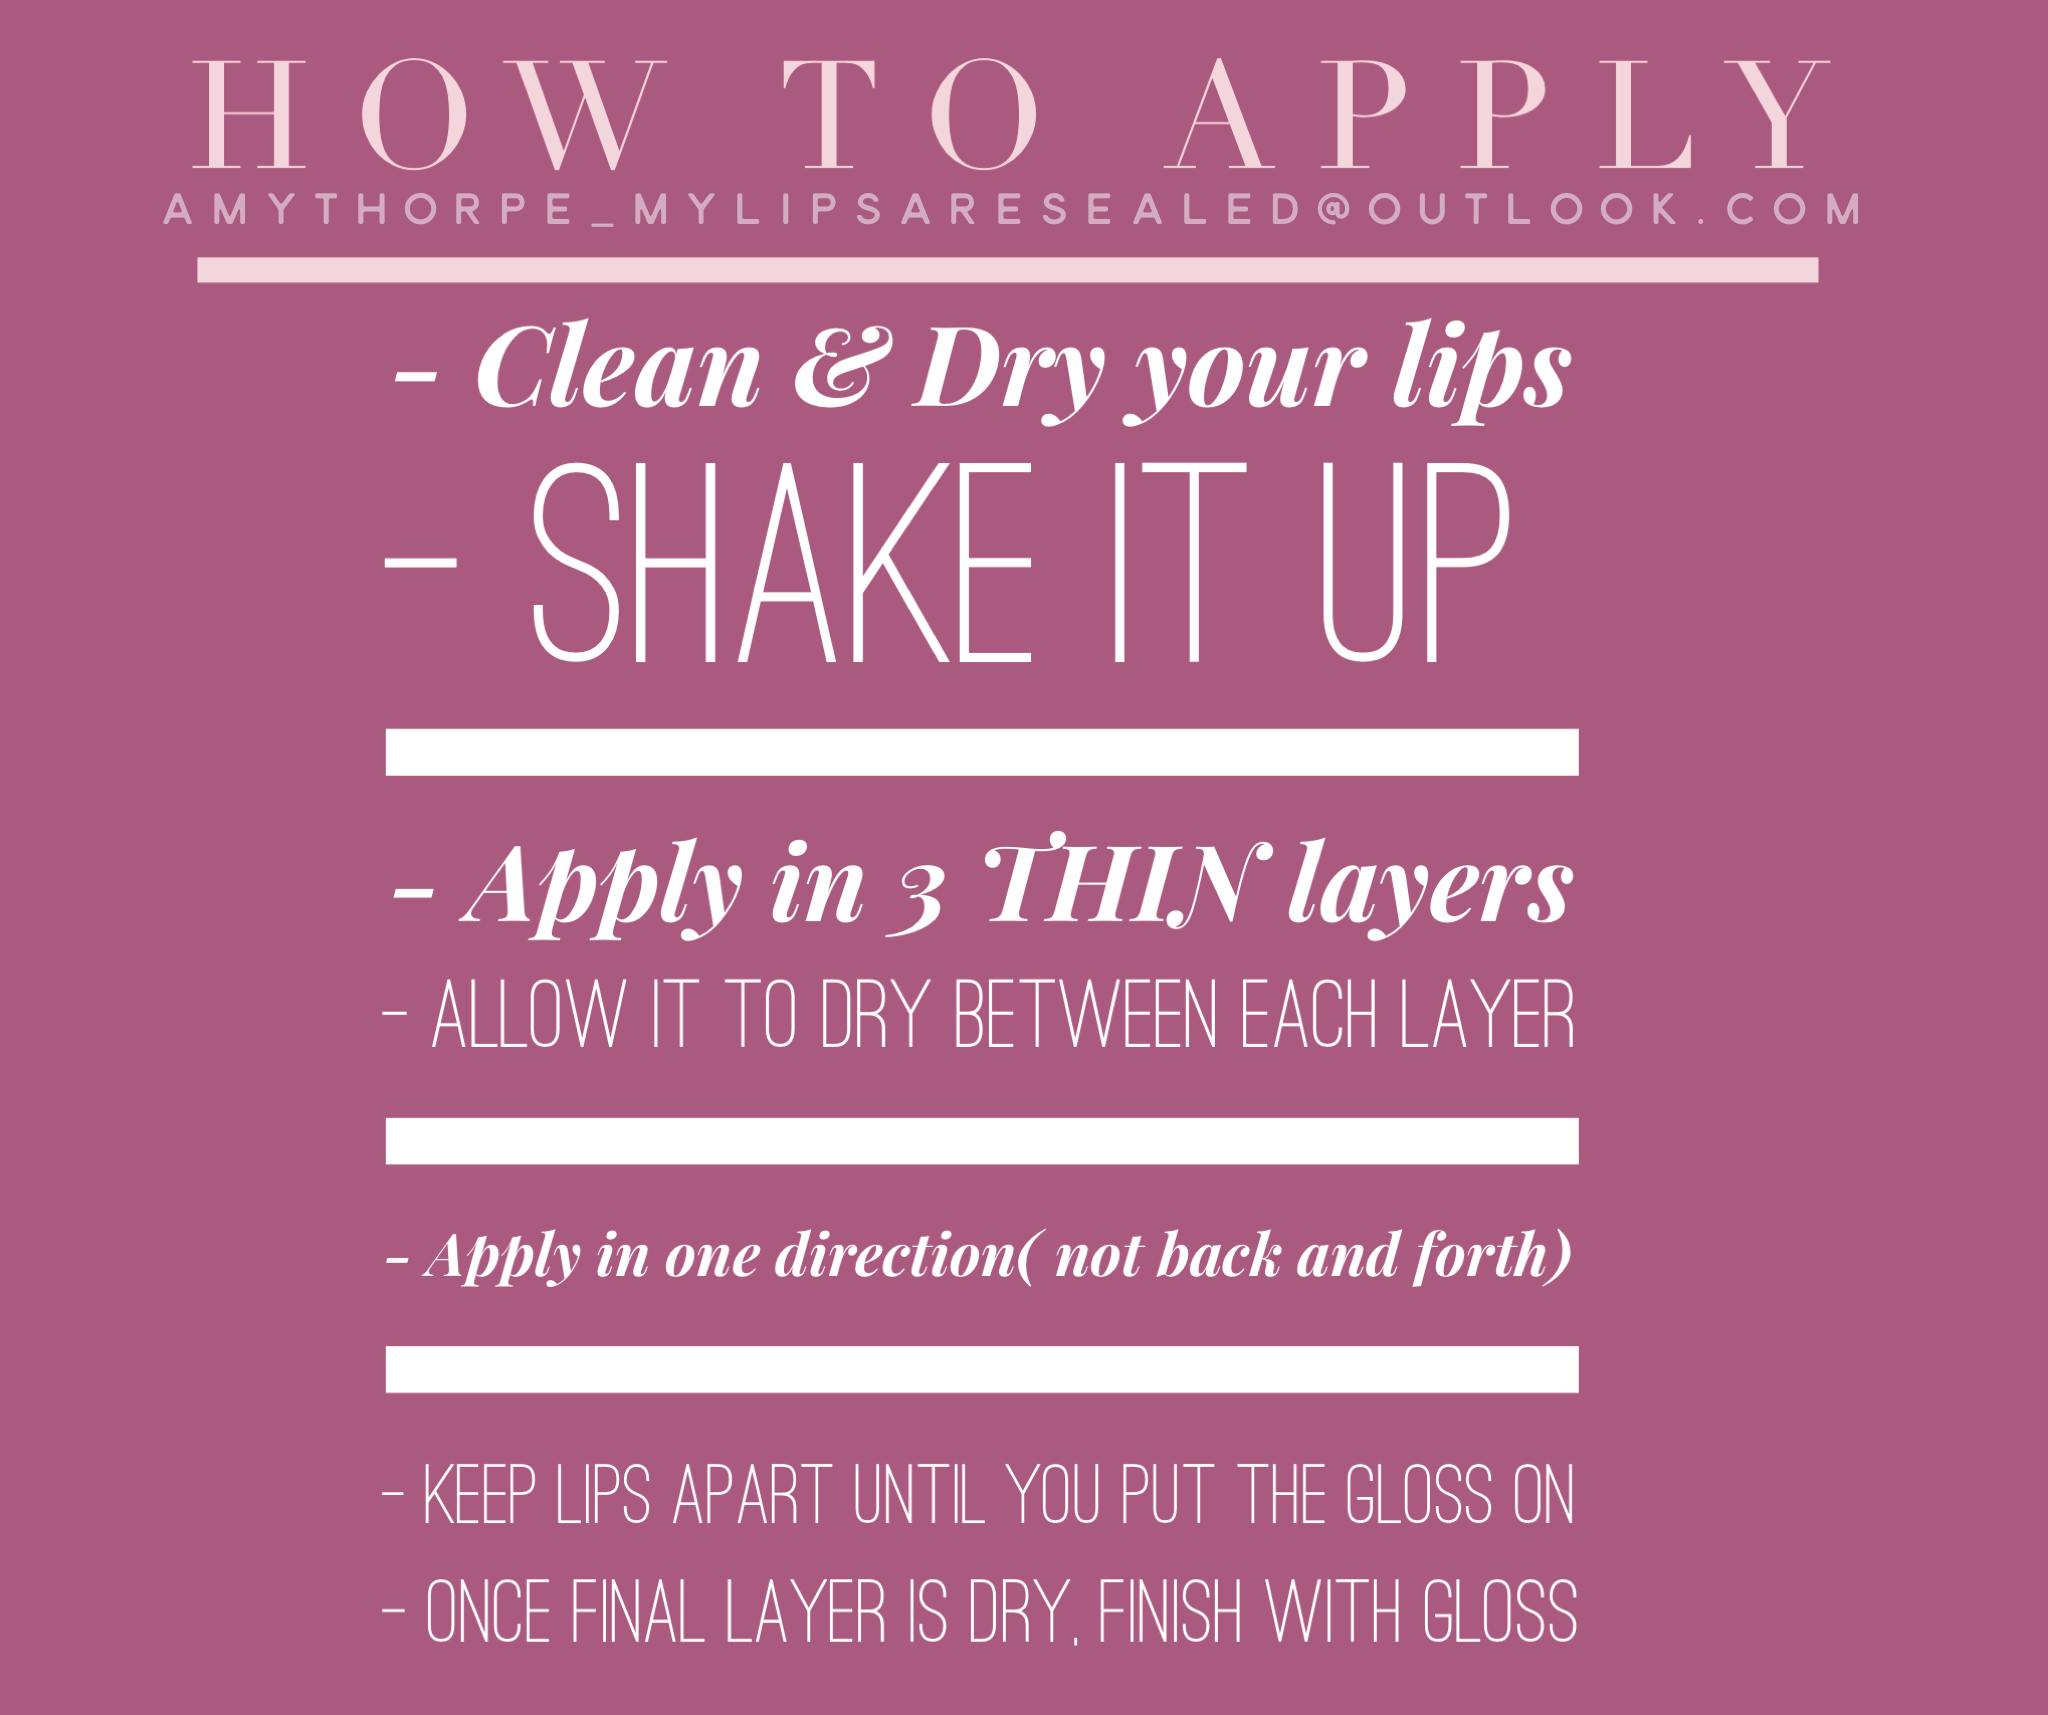 How to apply LipSense! It's a easy but unique process